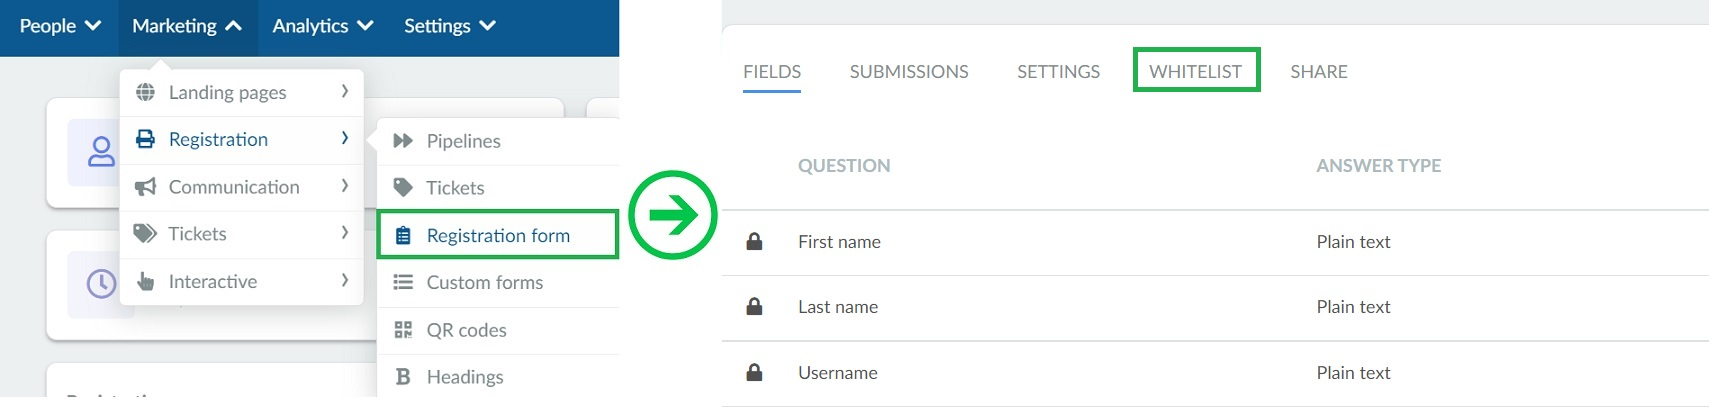 How to add whitelisted domains